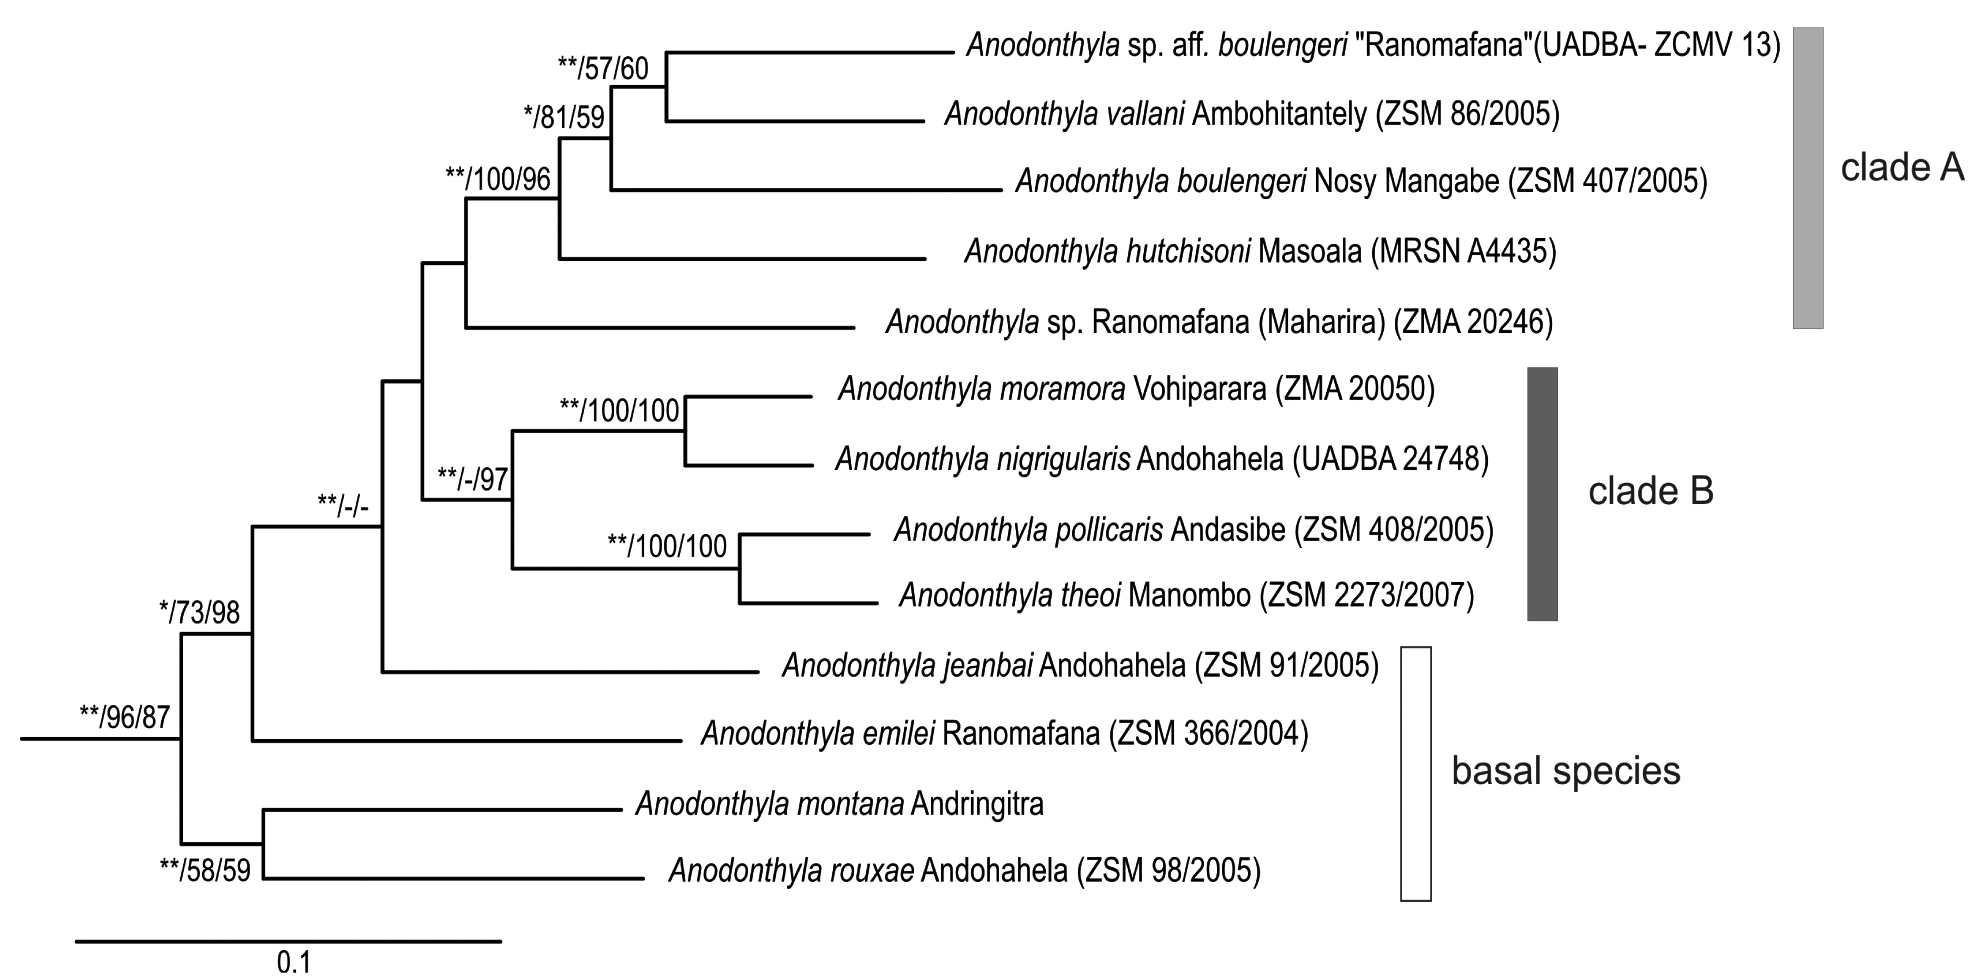 Animal phylogeny based on molecular data - My site Daot.tk